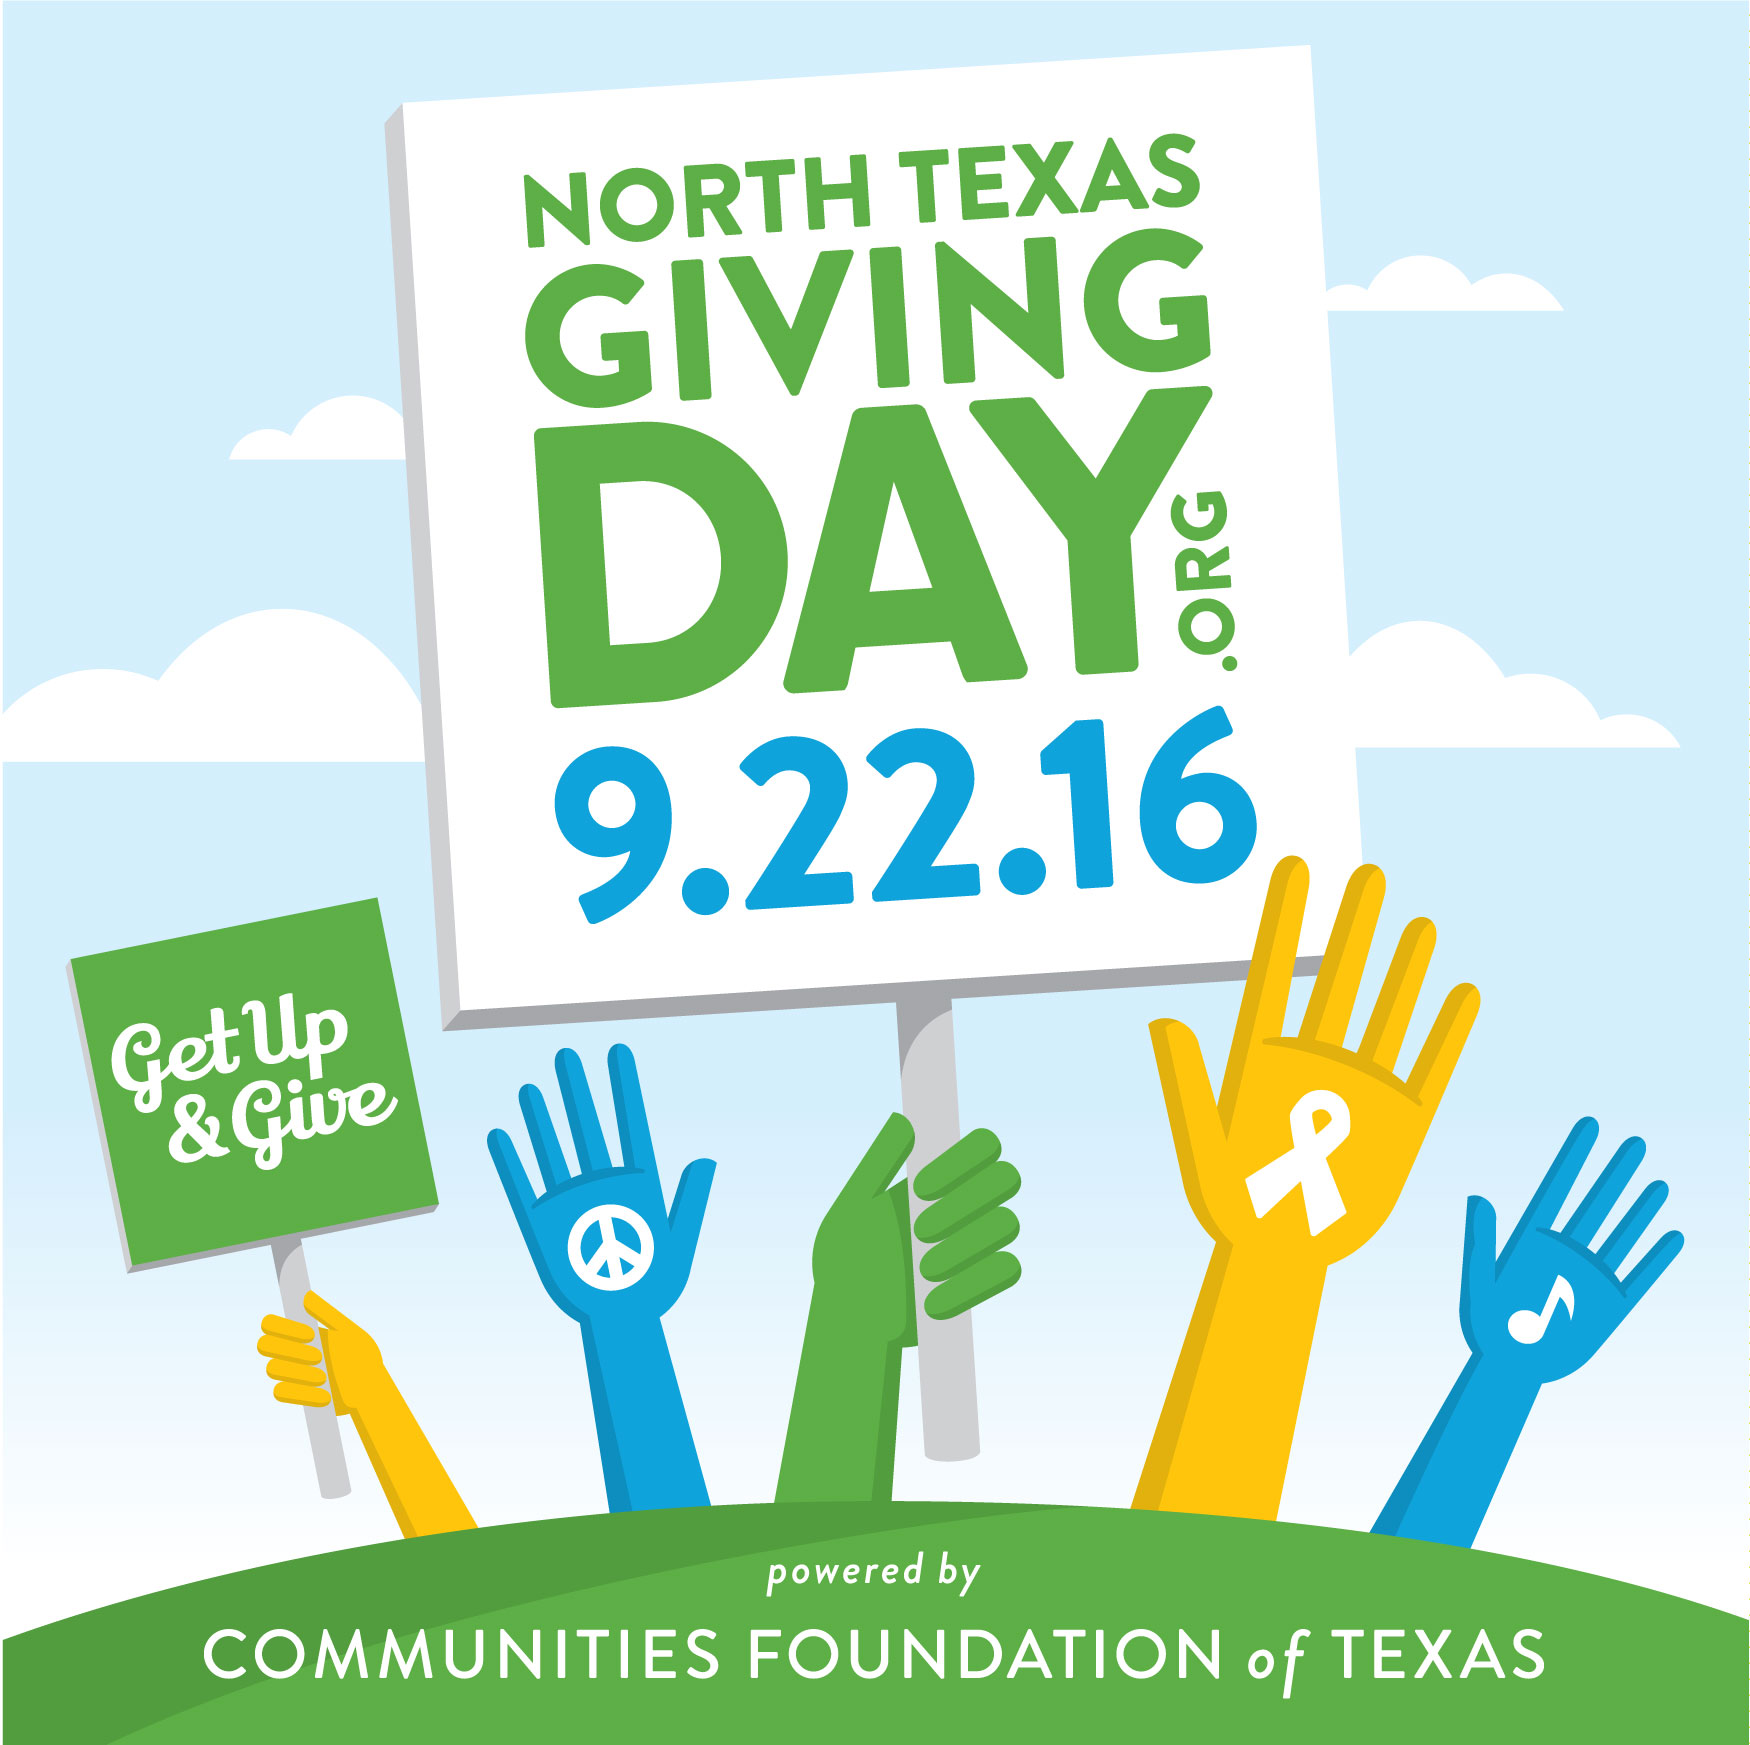 North Texas Giving Day is September 22